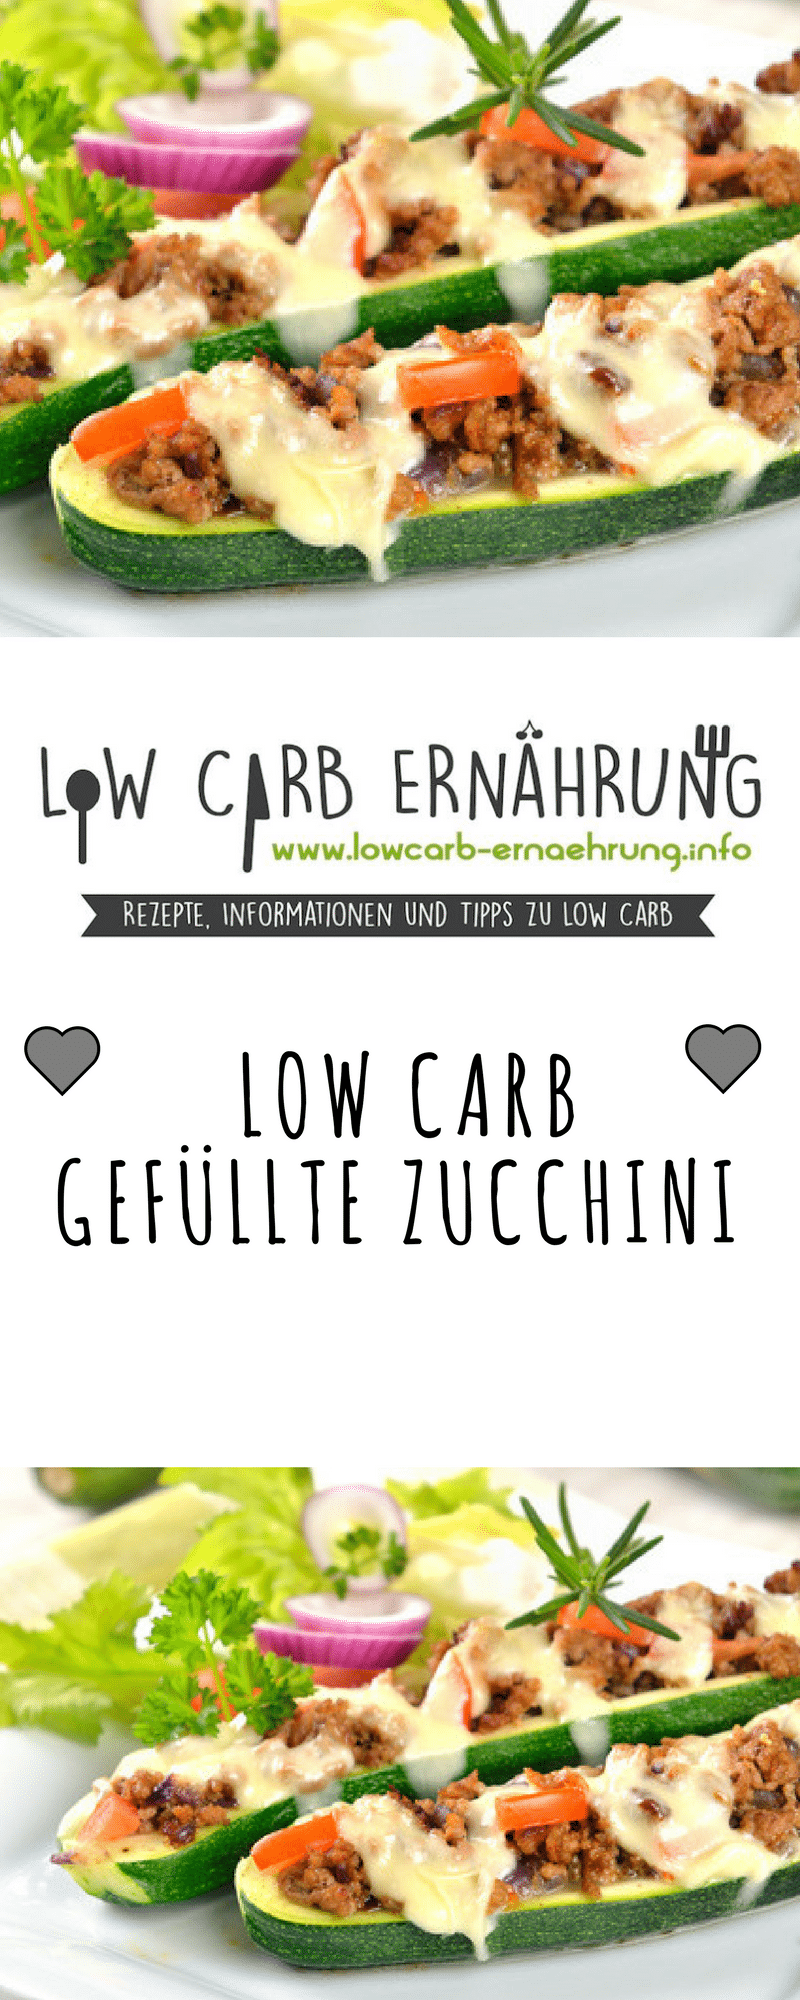 Photo of Low carb recipe for delicious stuffed zucchini with low carbohydrates. Low Ca …